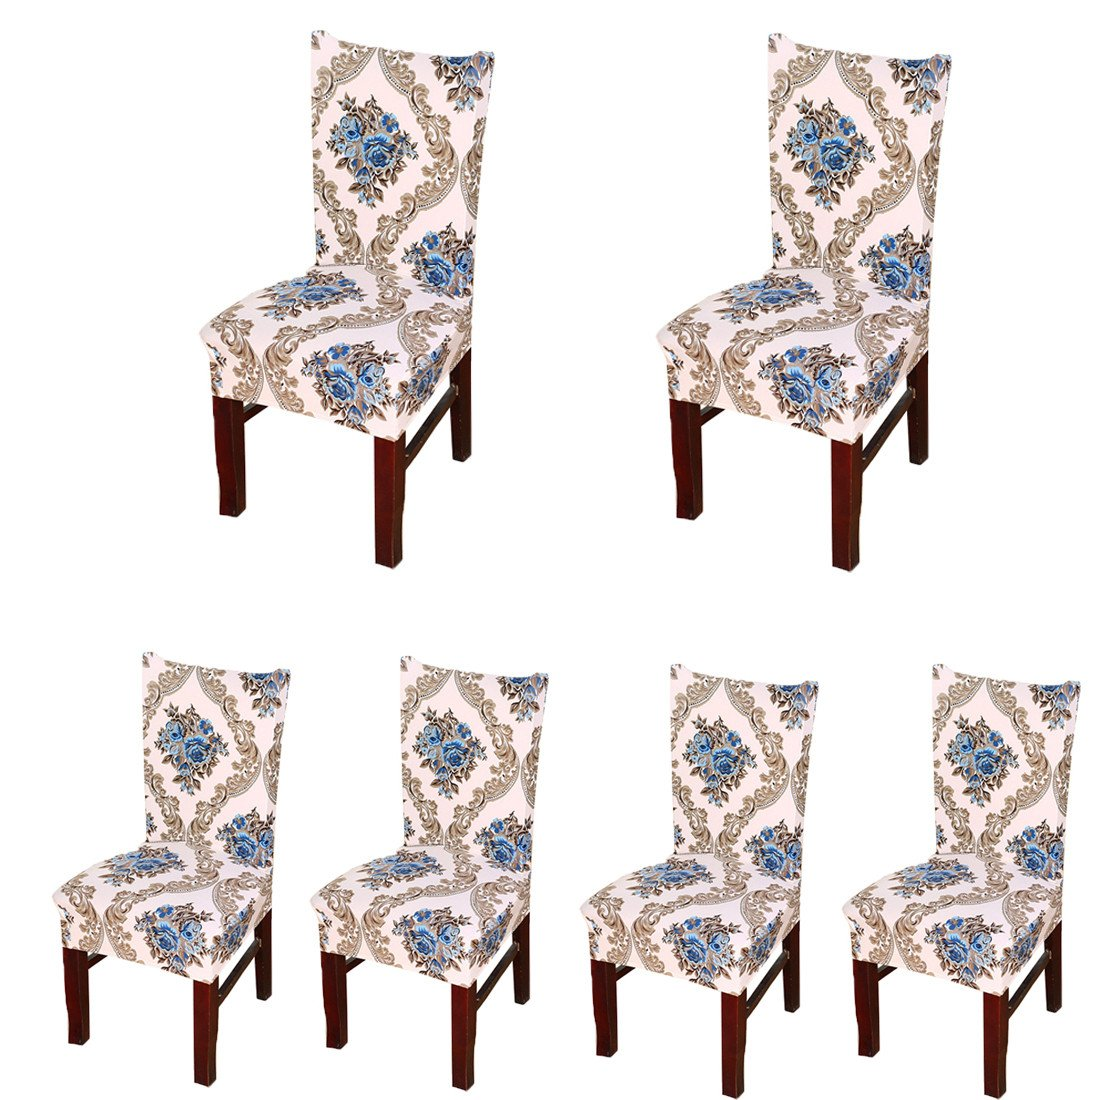 Deisy Dee Stretch Chair Cover Removable Washable for Hotel Dining Room Ceremony Chair Slipcovers Pack of 6 (A) C025